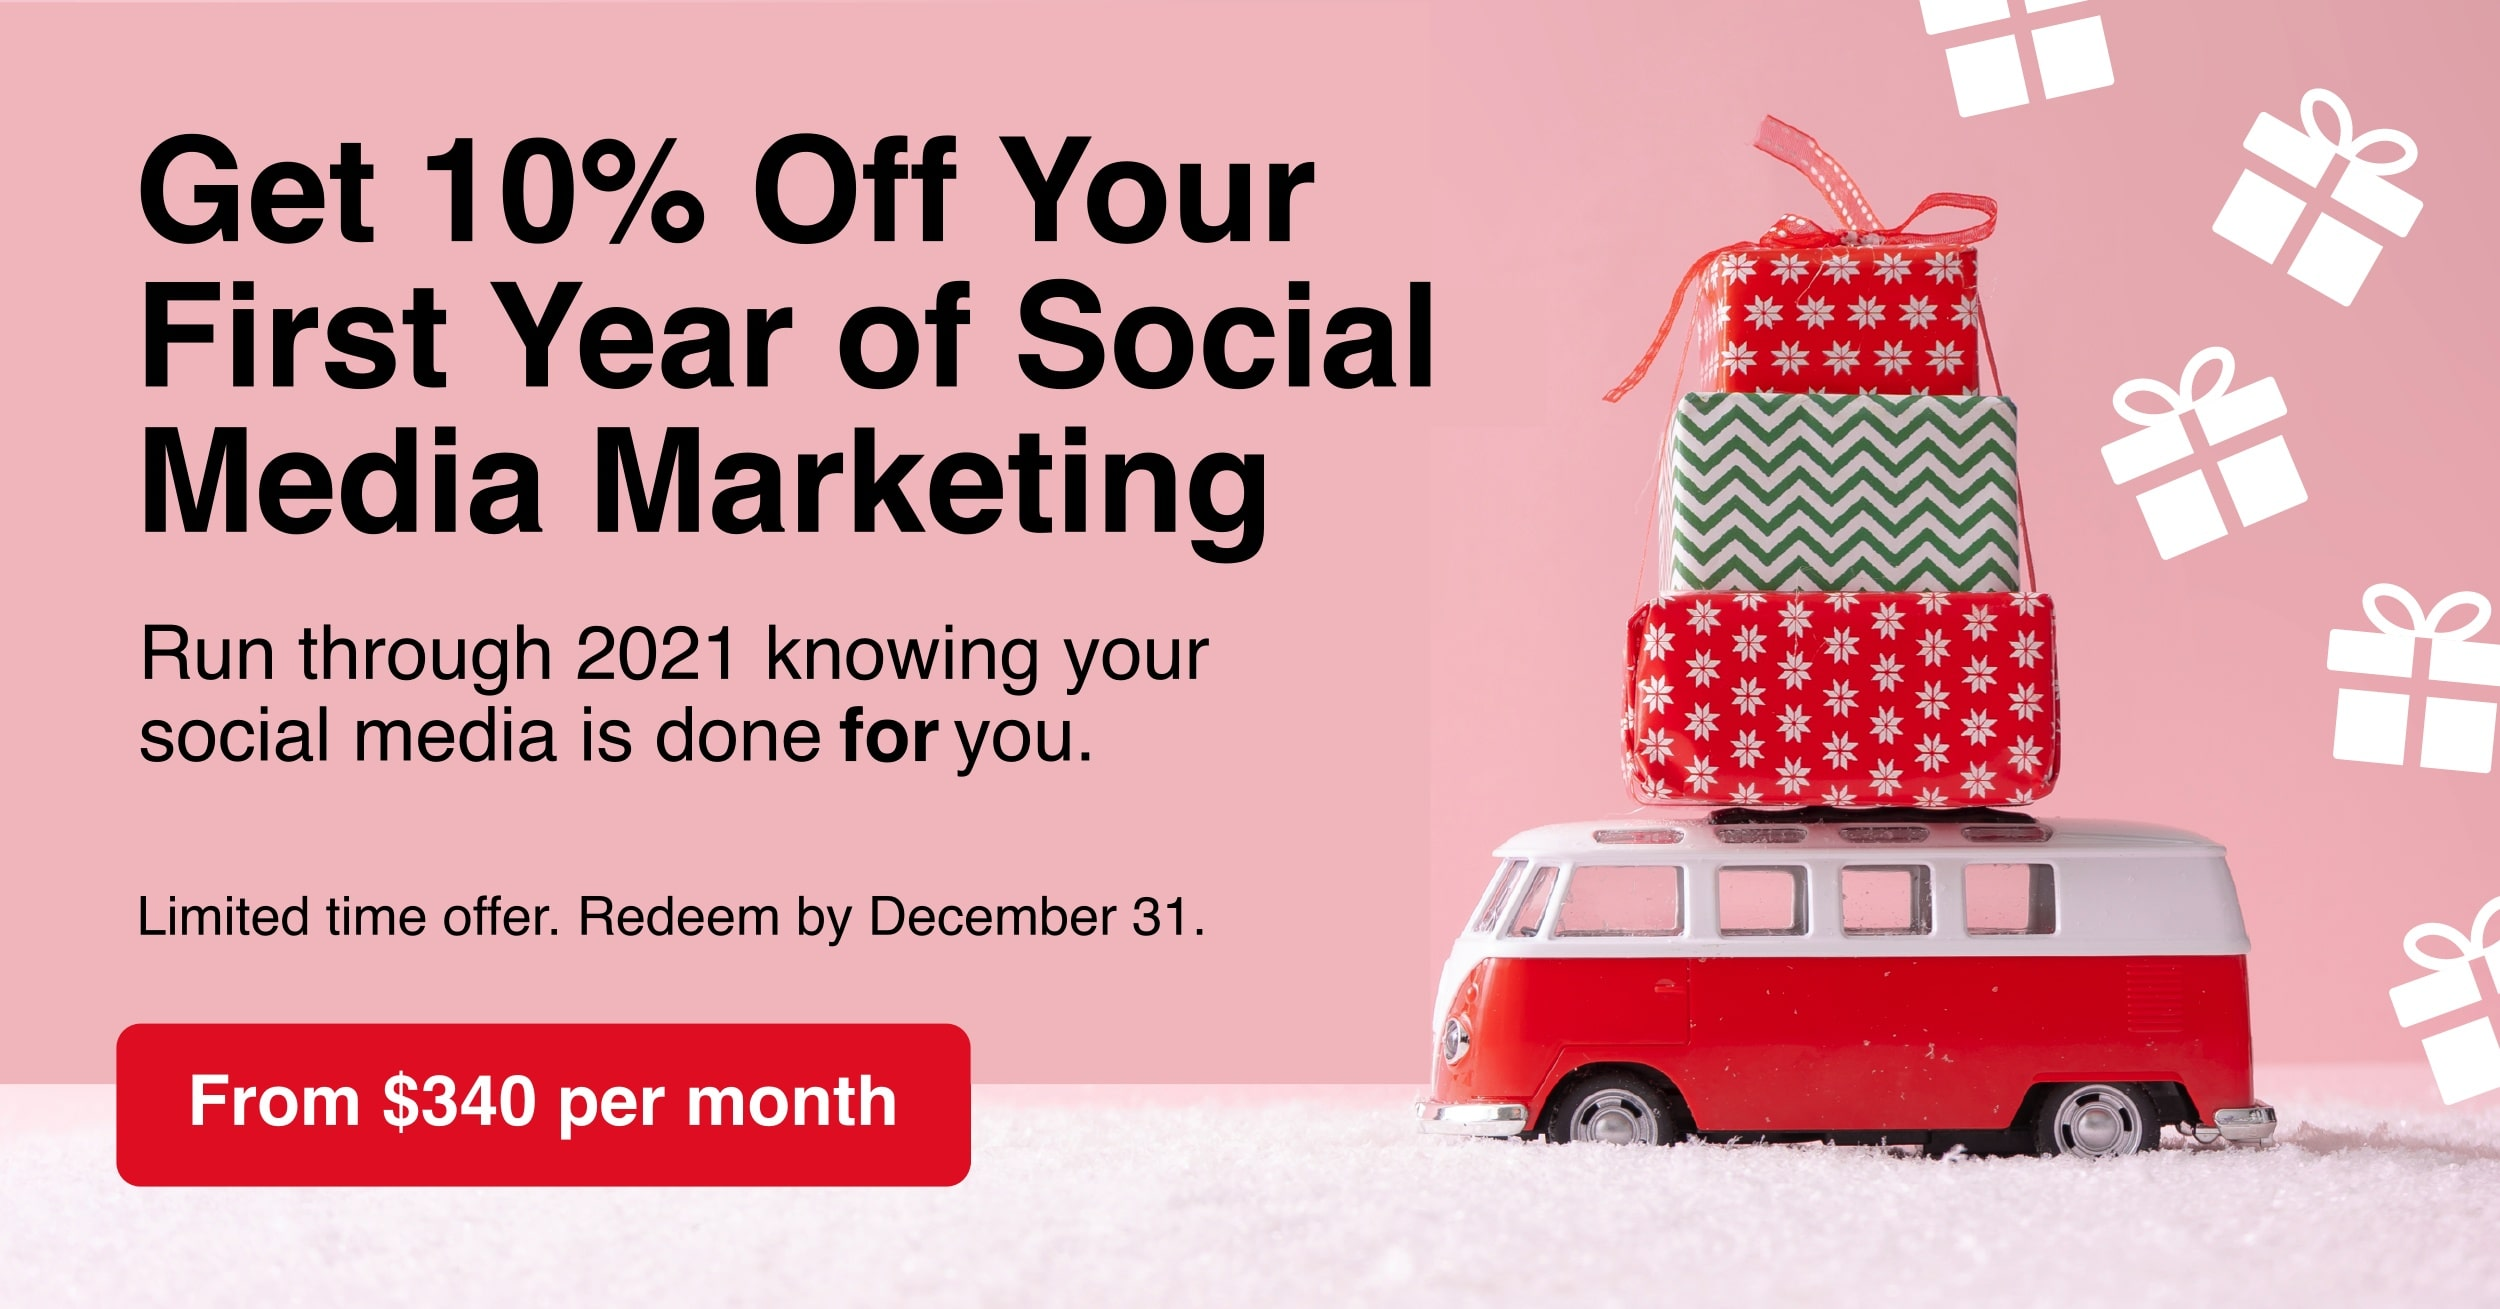 Social media marketing done for you special offer